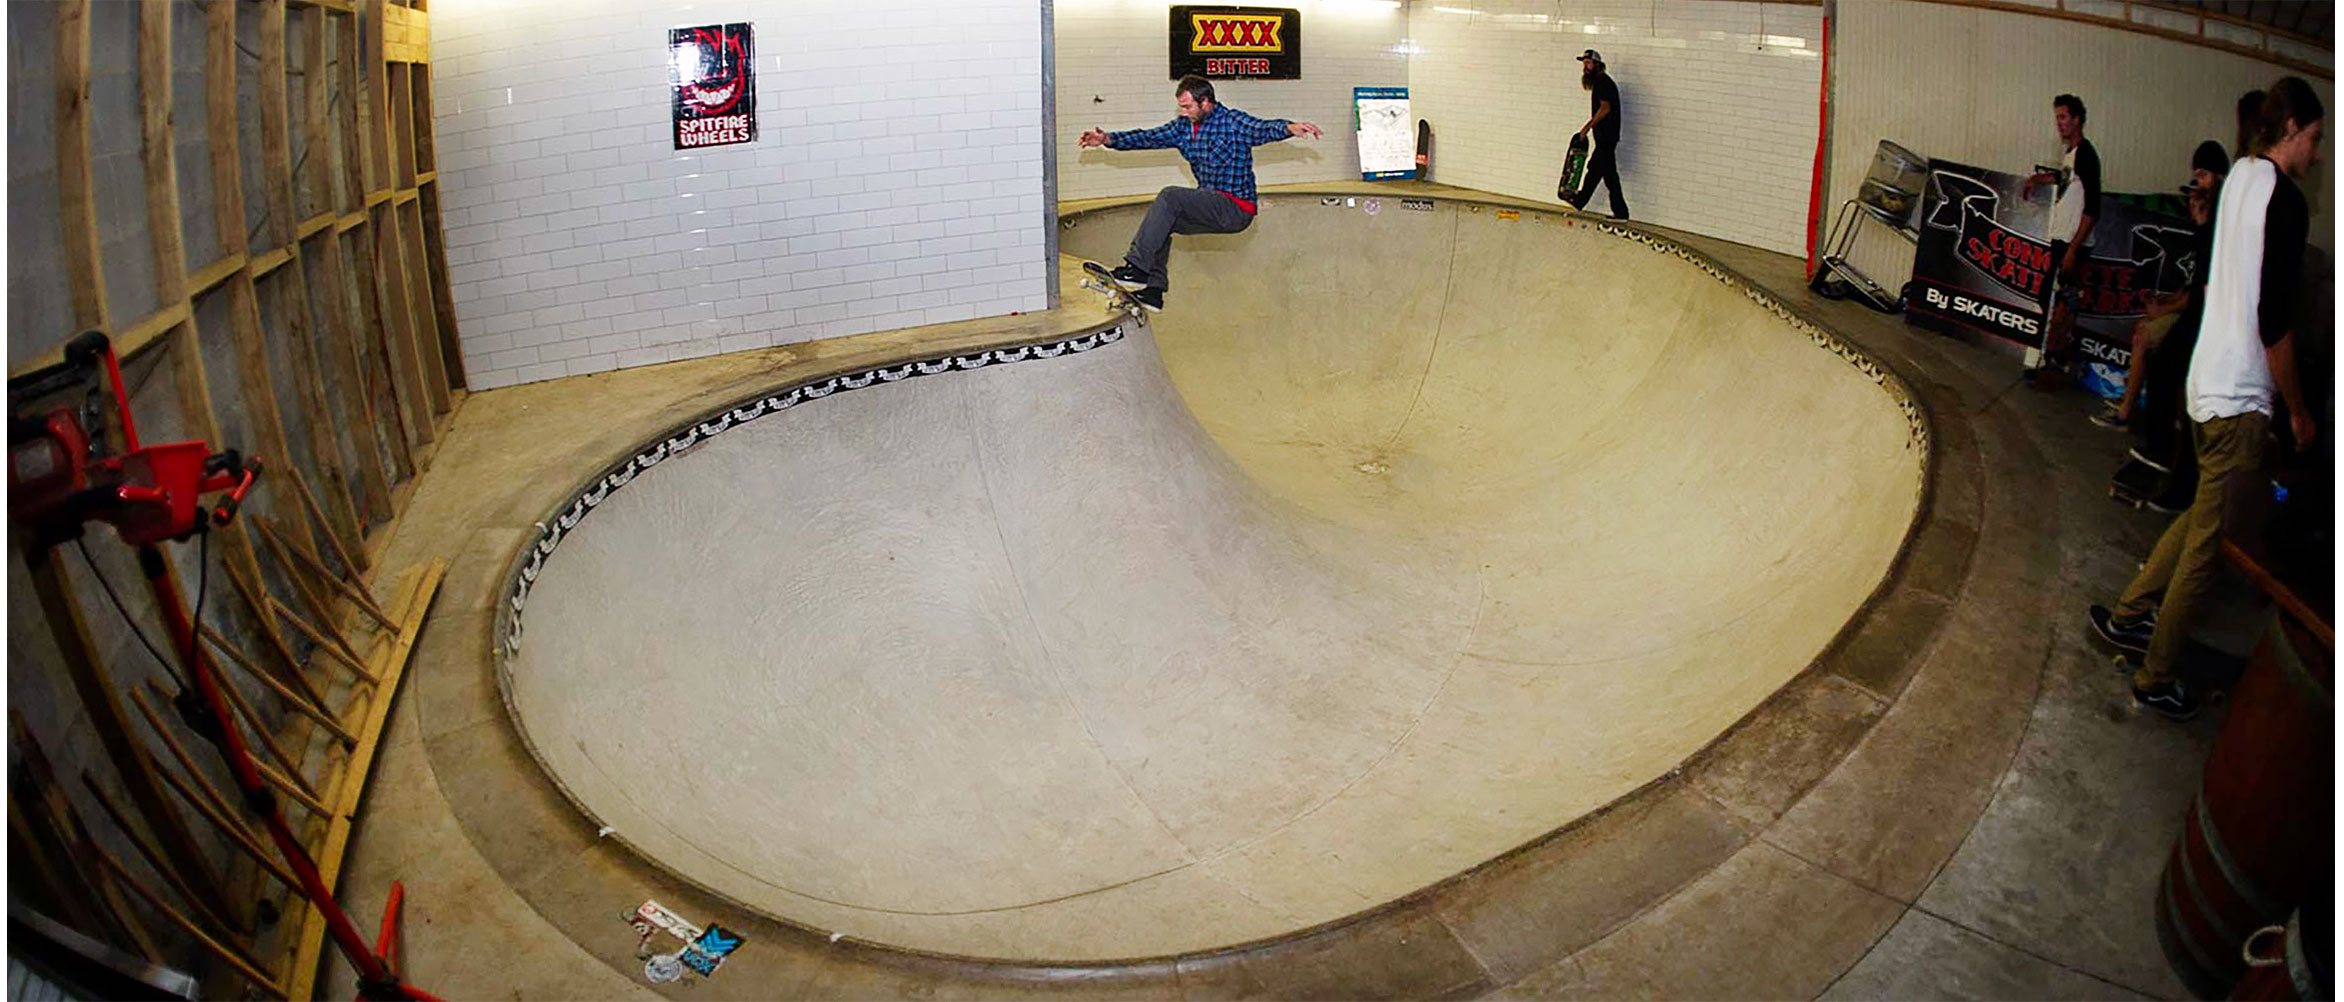 Dorfus frontside grind over the hip, CSP headquarters, Andrew Currie photo